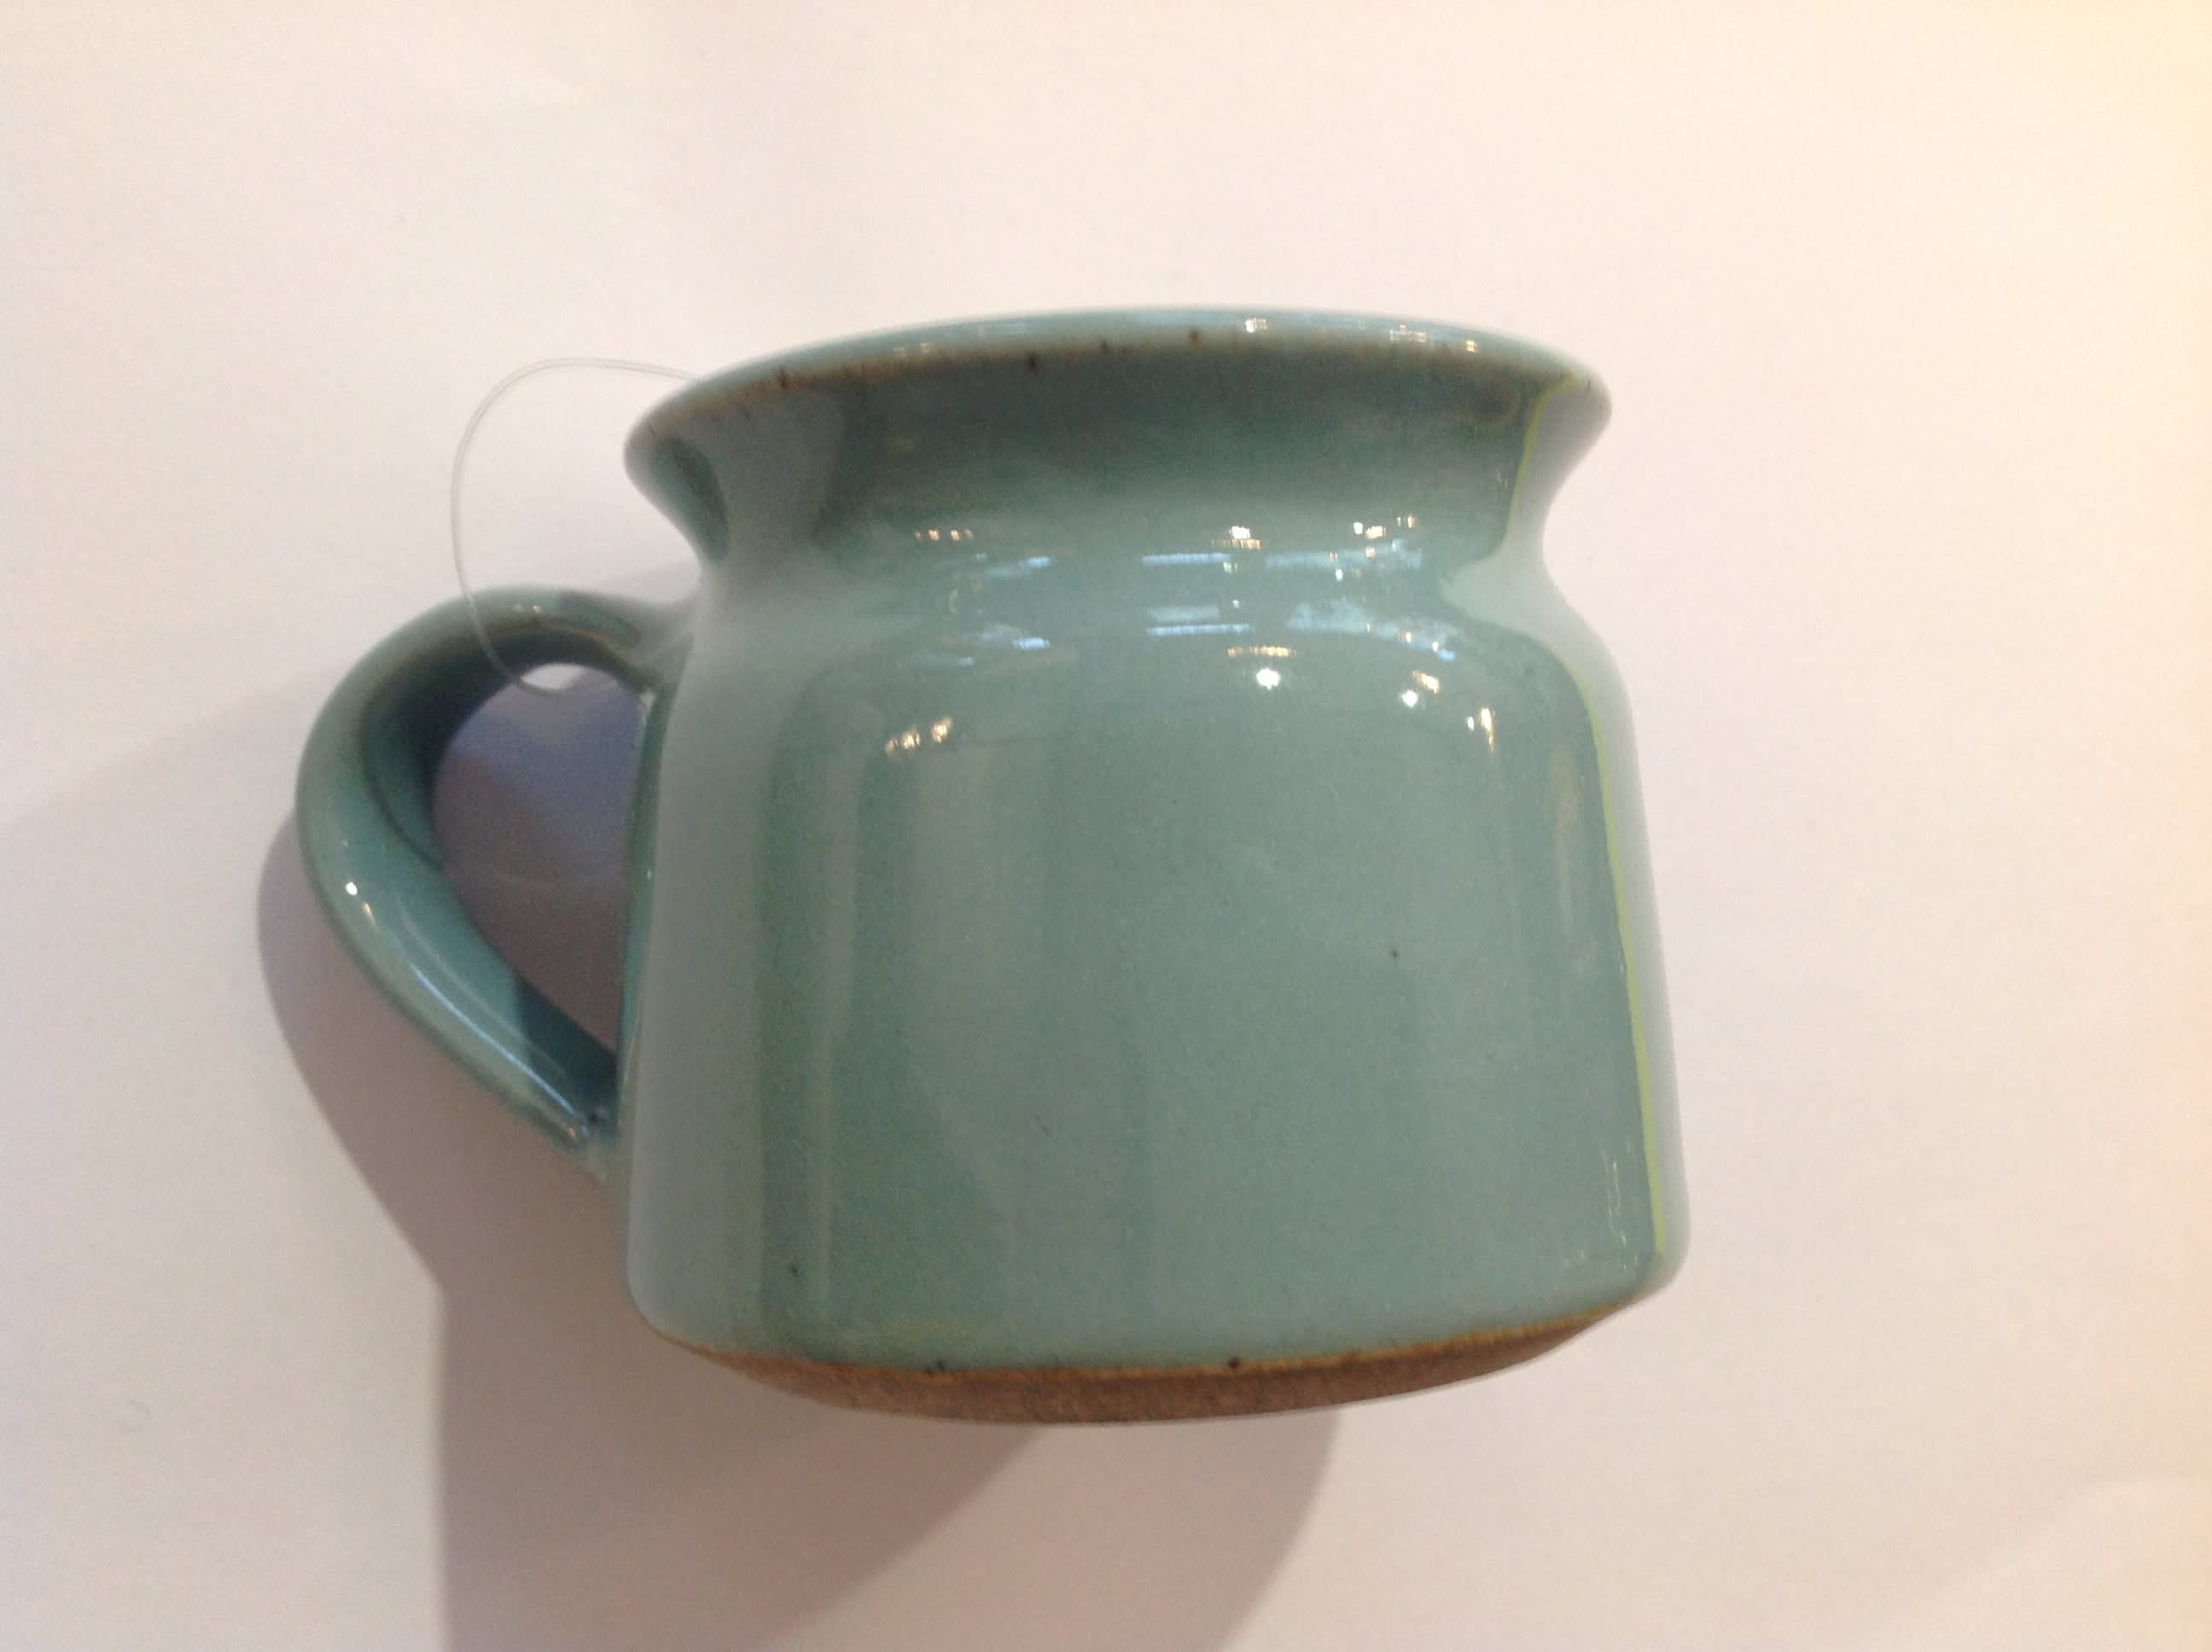 New Overseas Traders Handmade Fairtrade Mug In A Mint Green Colour with a green inside